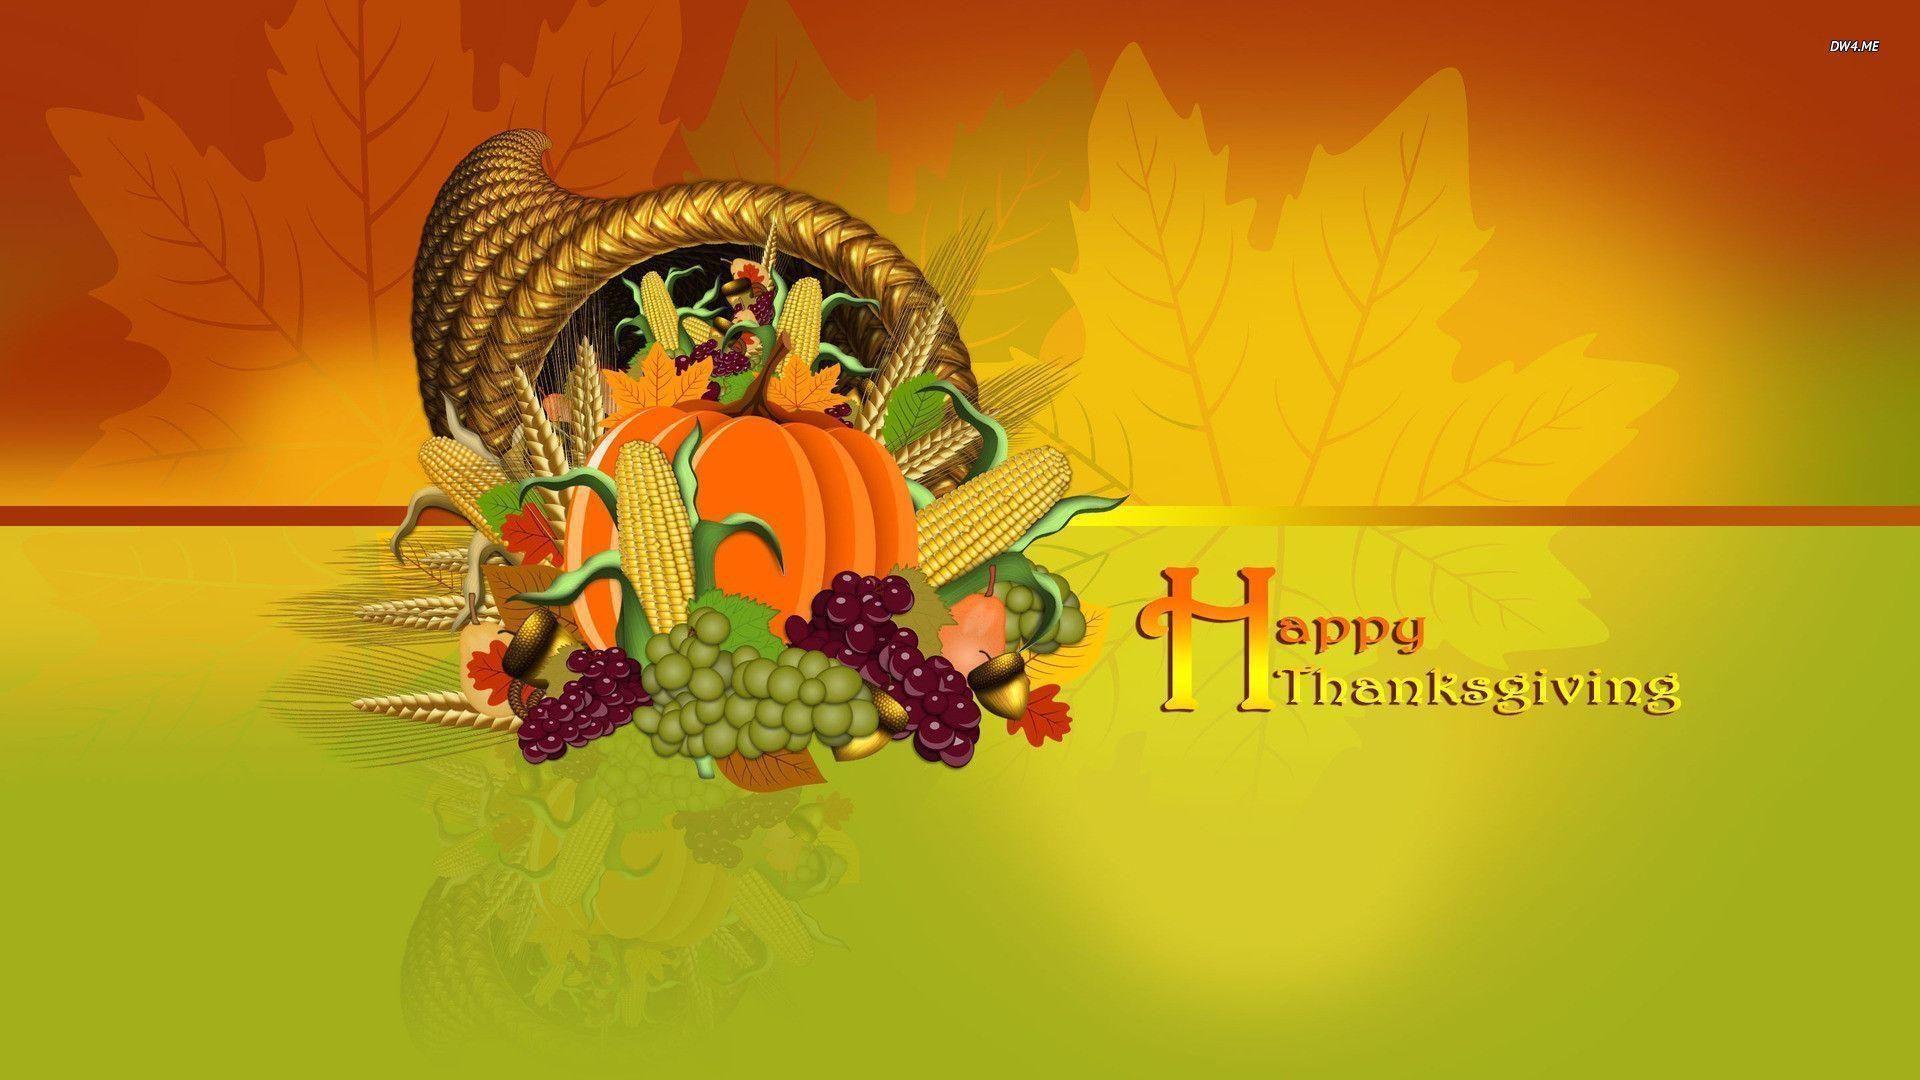 happy thanksgivinghd wallpapers - photo #17